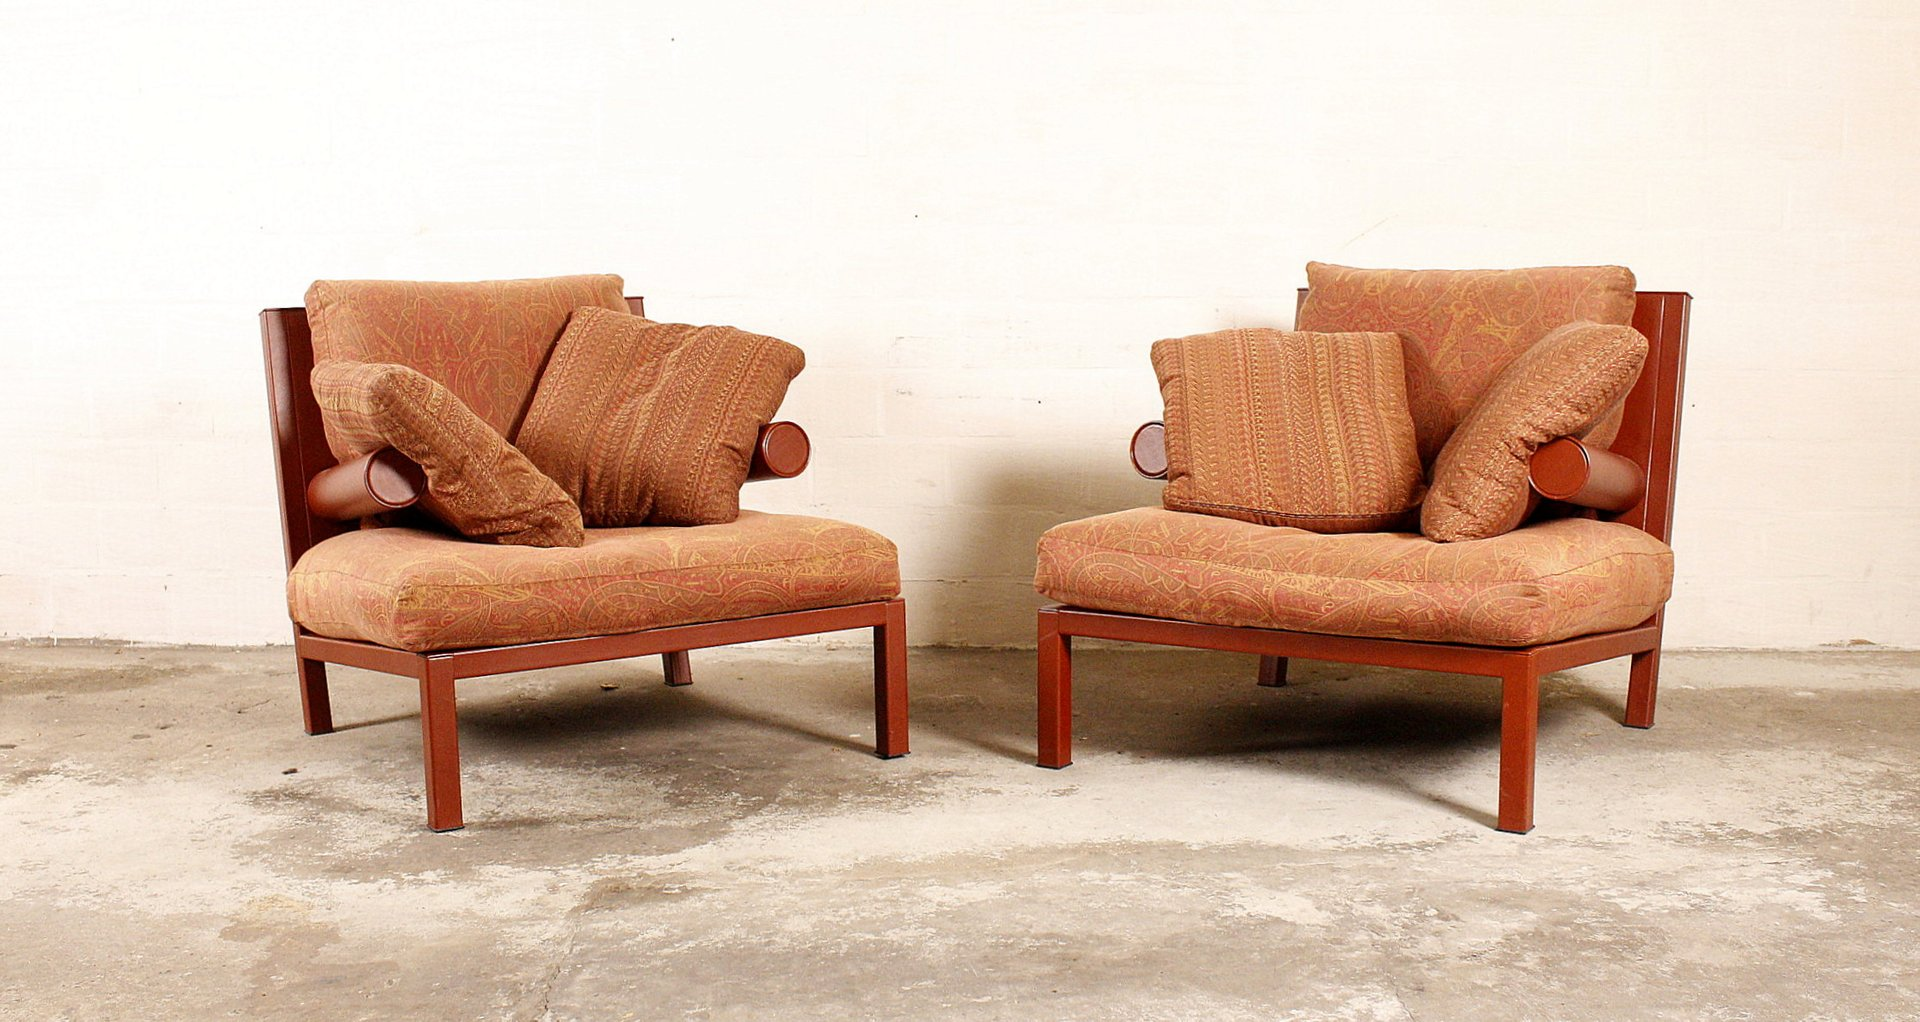 Vintage baisity armchairs by antonio citterio for b b for Antonio citterio